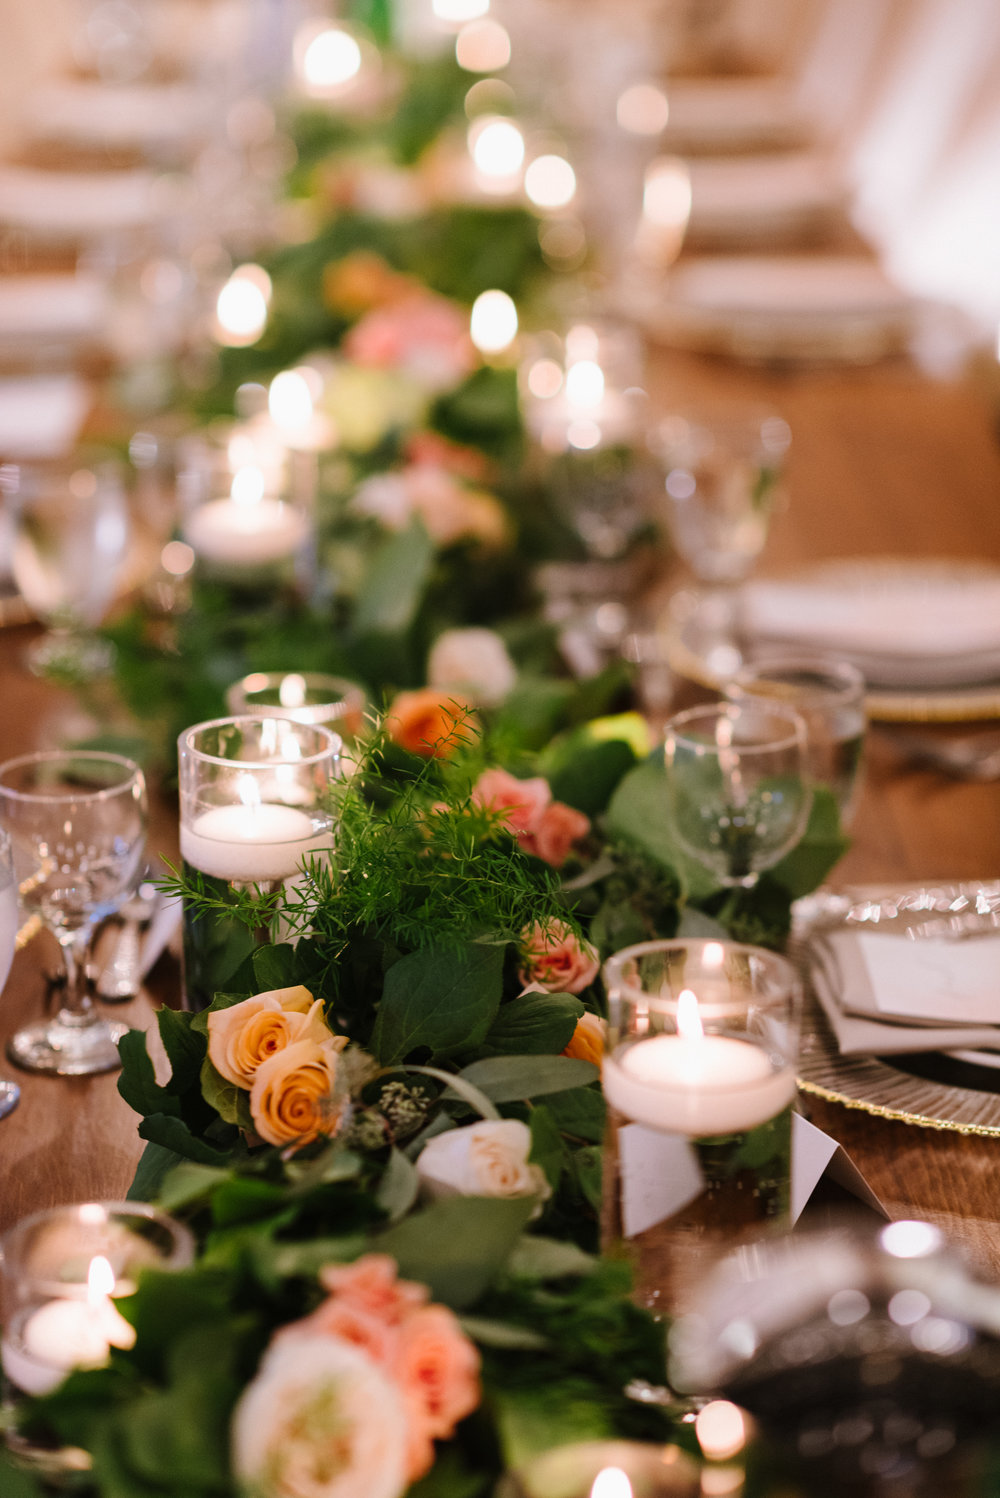 greenery-floating-candles-tablescape-place-settings